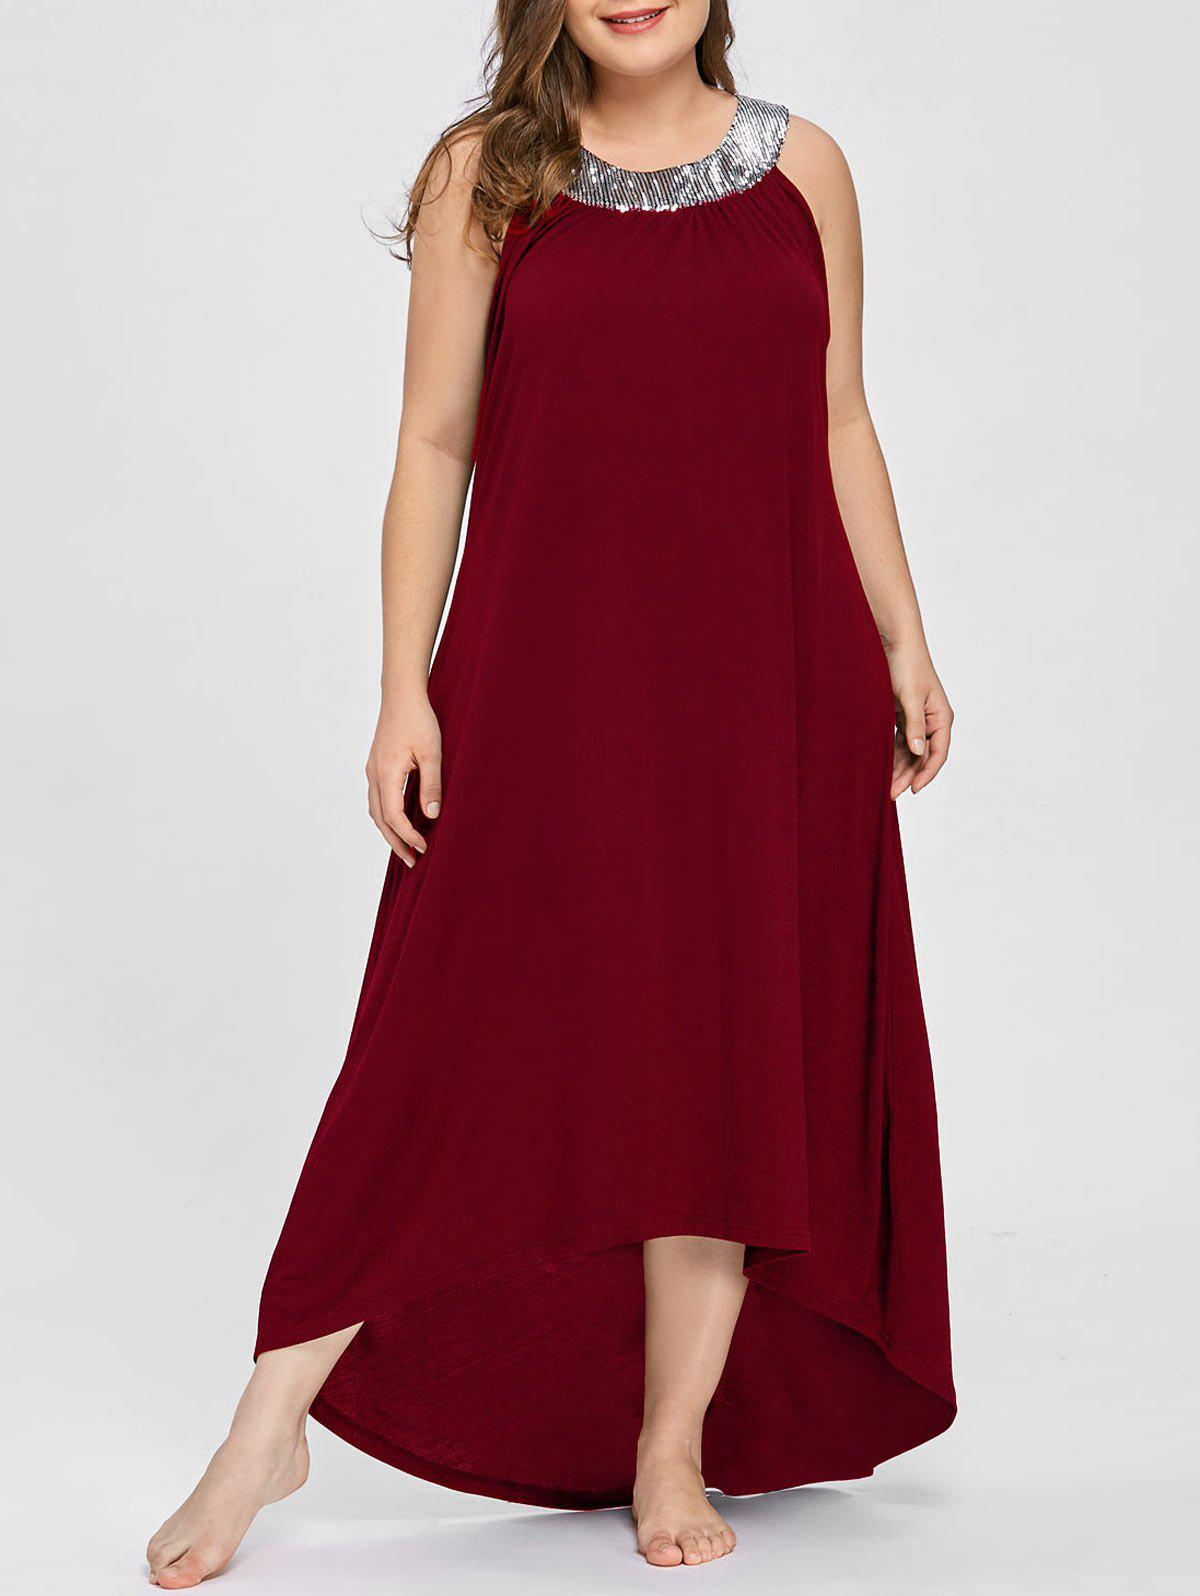 Sequins Collar Plus Size Sleeveless Maxi Dress - WINE RED 3XL